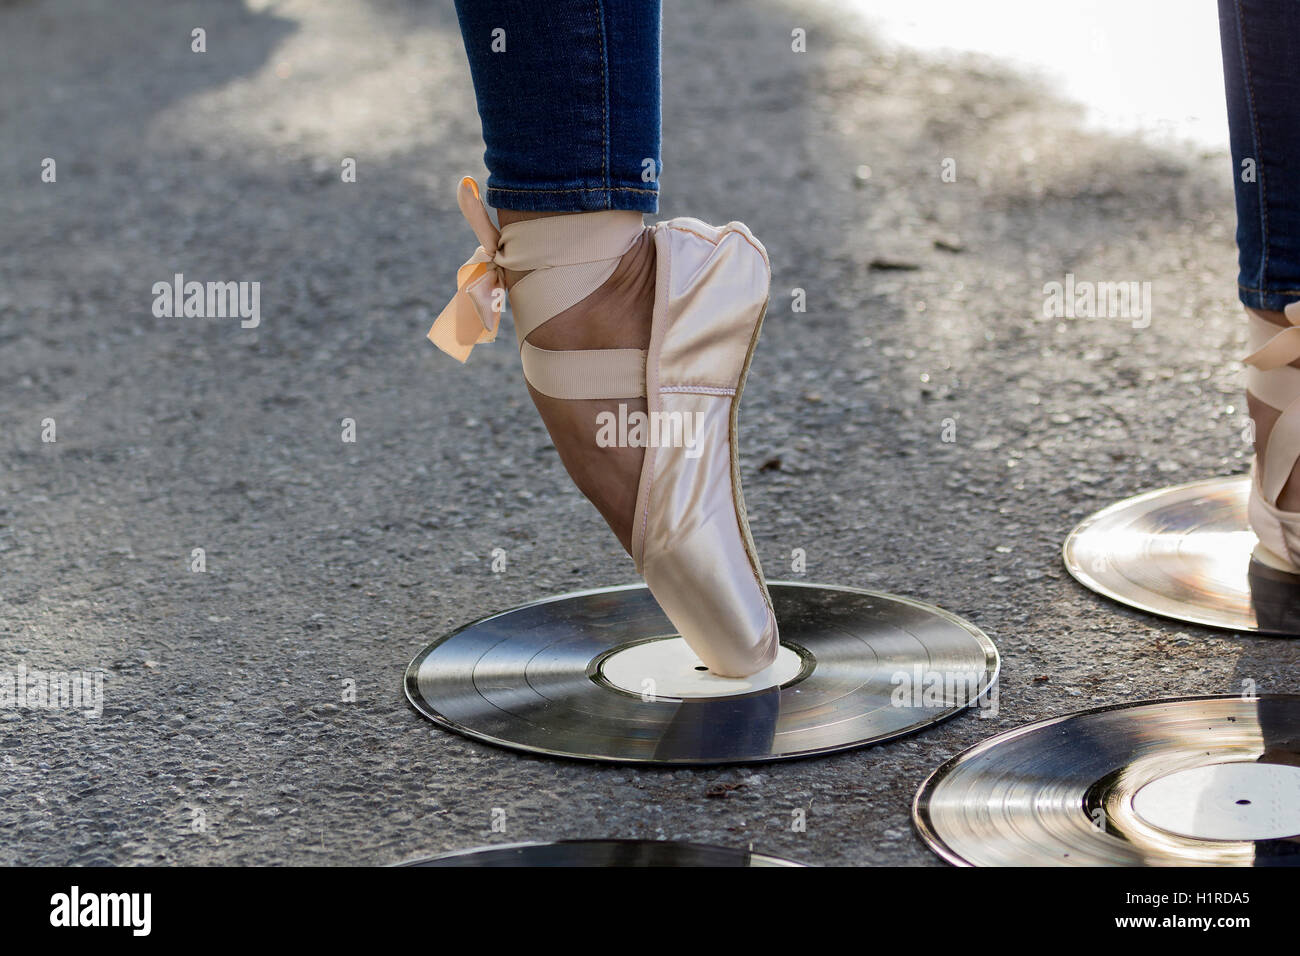 Feet girl in Ballet shoes stand amid vinyl discs. - Stock Image